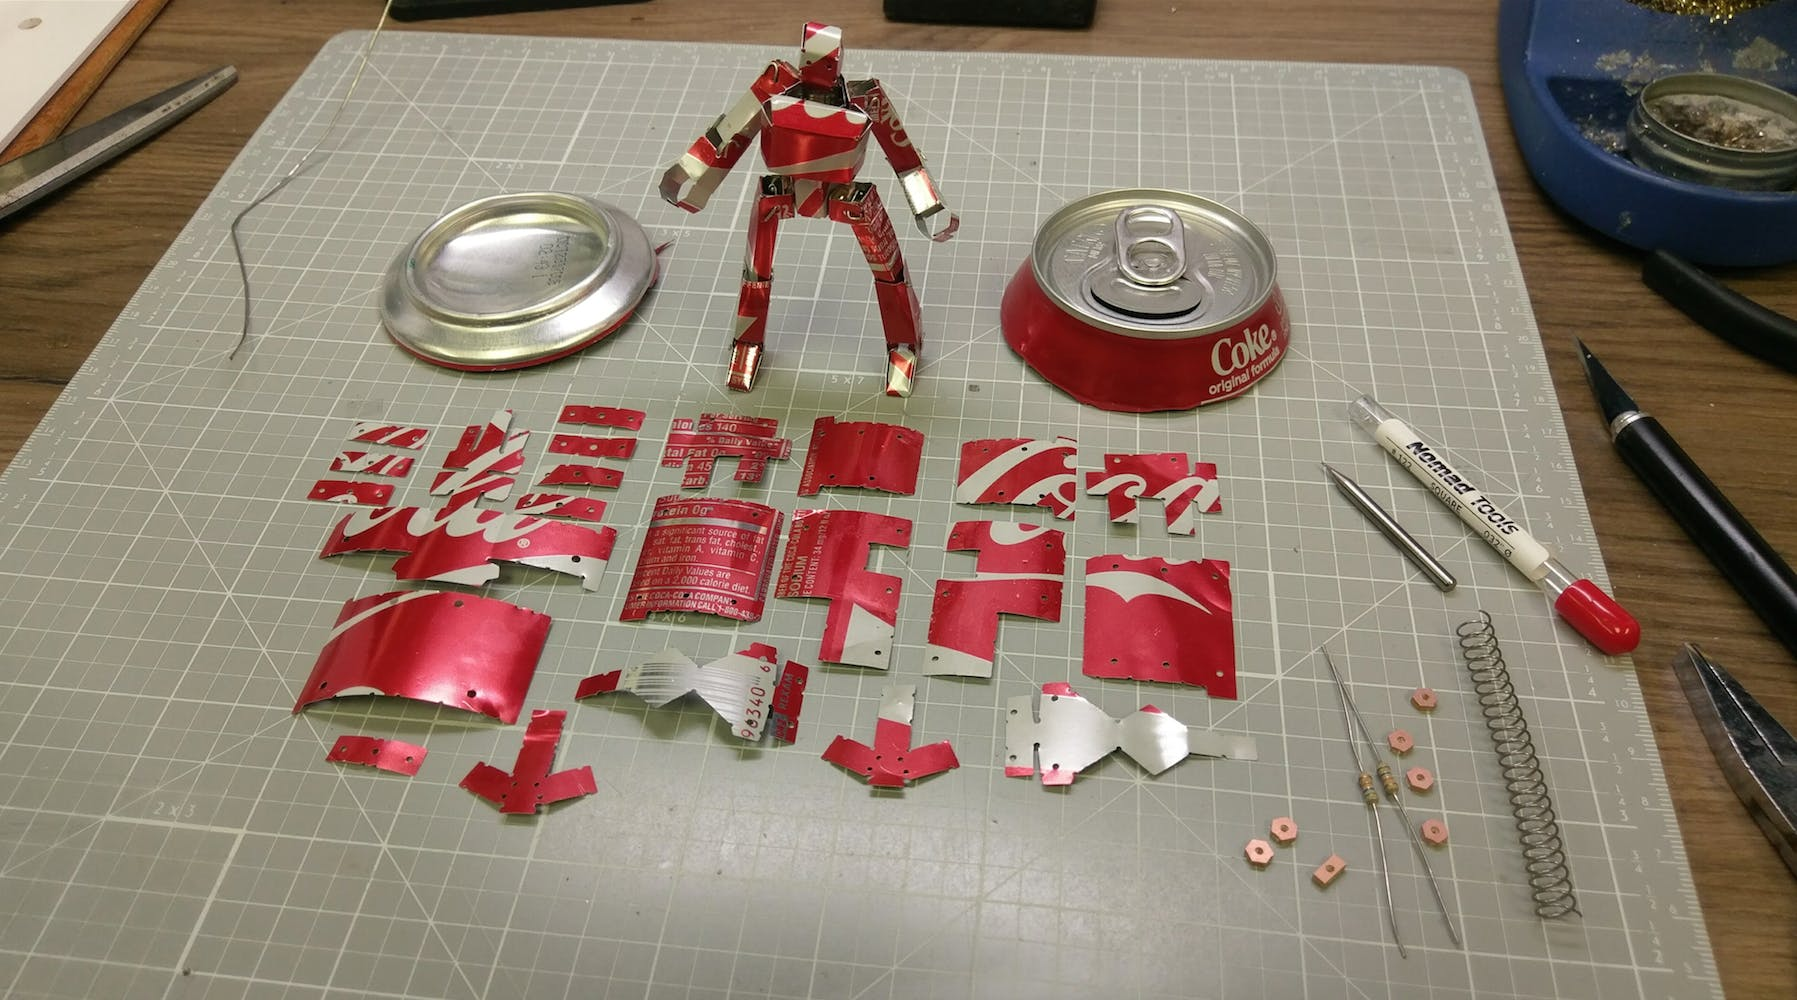 All the parts needed to make a Stop Motion Capable Recycled Robot